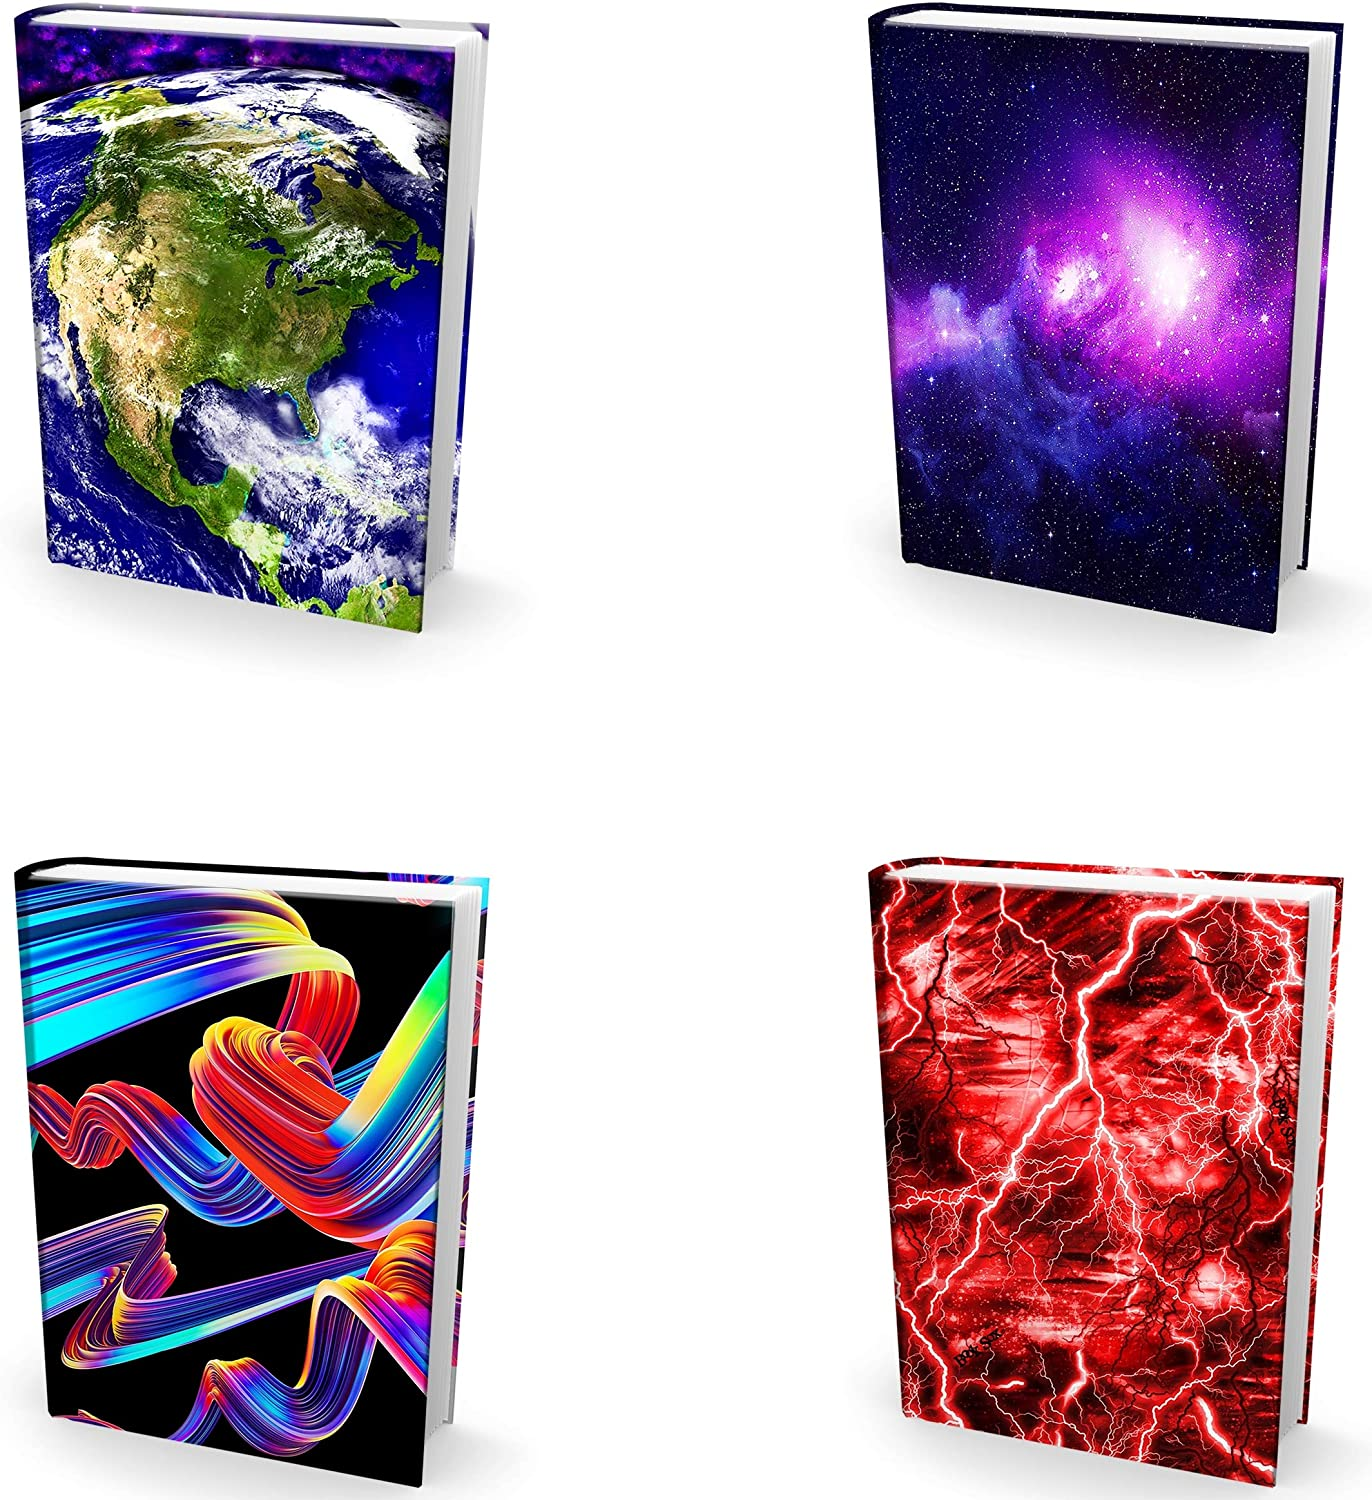 Easy Apply, Reusable Book Covers 4 Pk. Best Jumbo 9x11 Textbook Jackets for Back to School. Stretchable to Fit Most Large Hardcover Books. Perfect Fun, Washable Designs for Girls, Boys, Kids and Teens